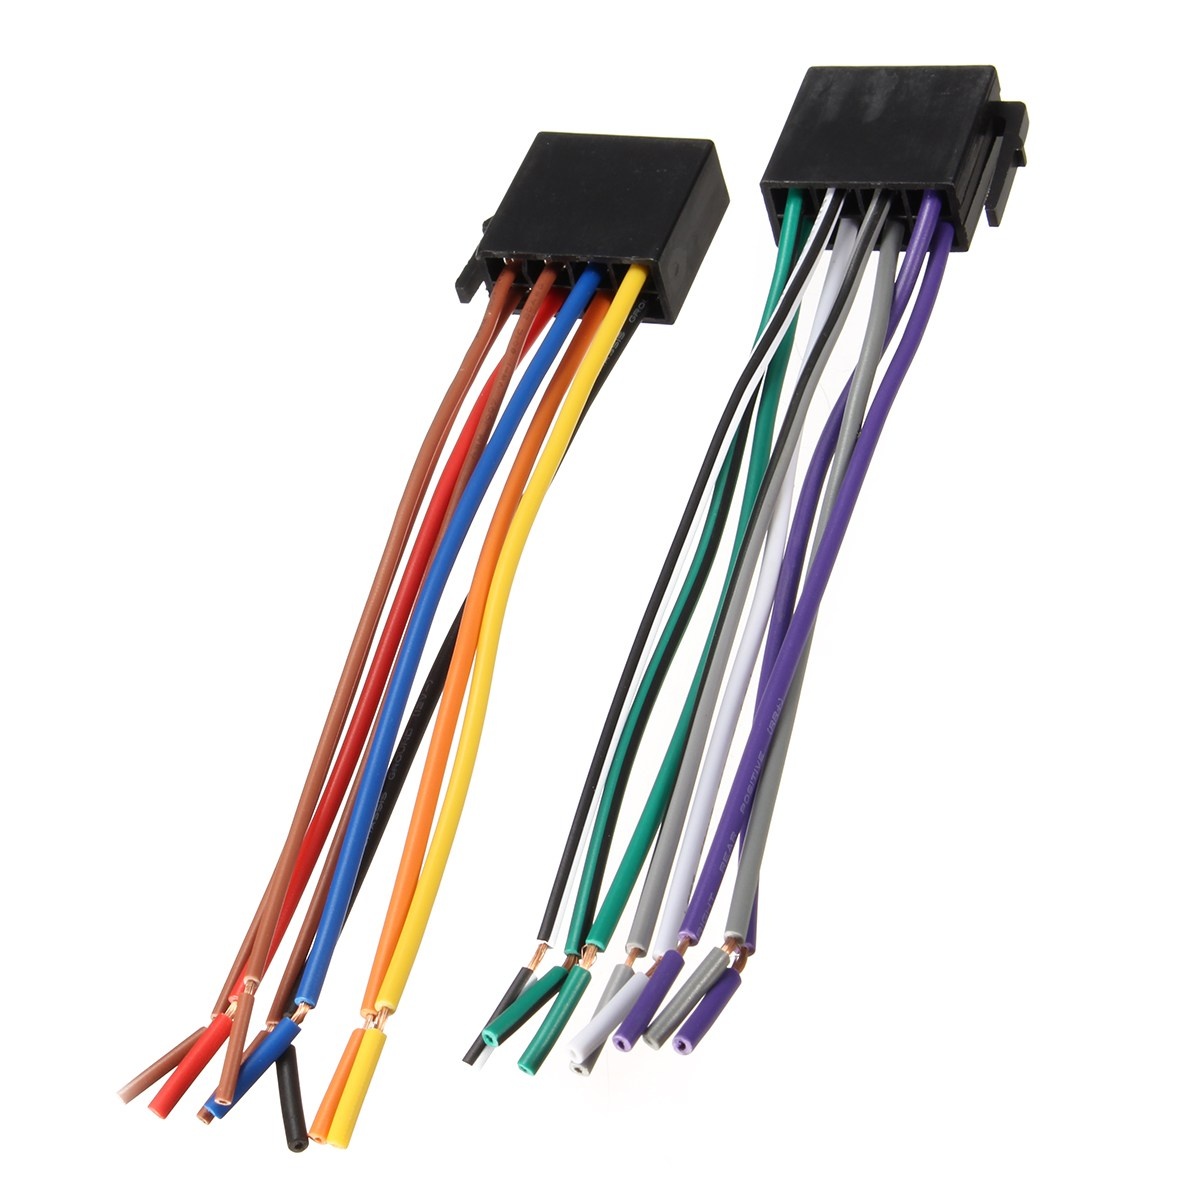 block diagram power antenna wire power antenna wire radio harness car radio wire harness adapter connector cable power ... #2